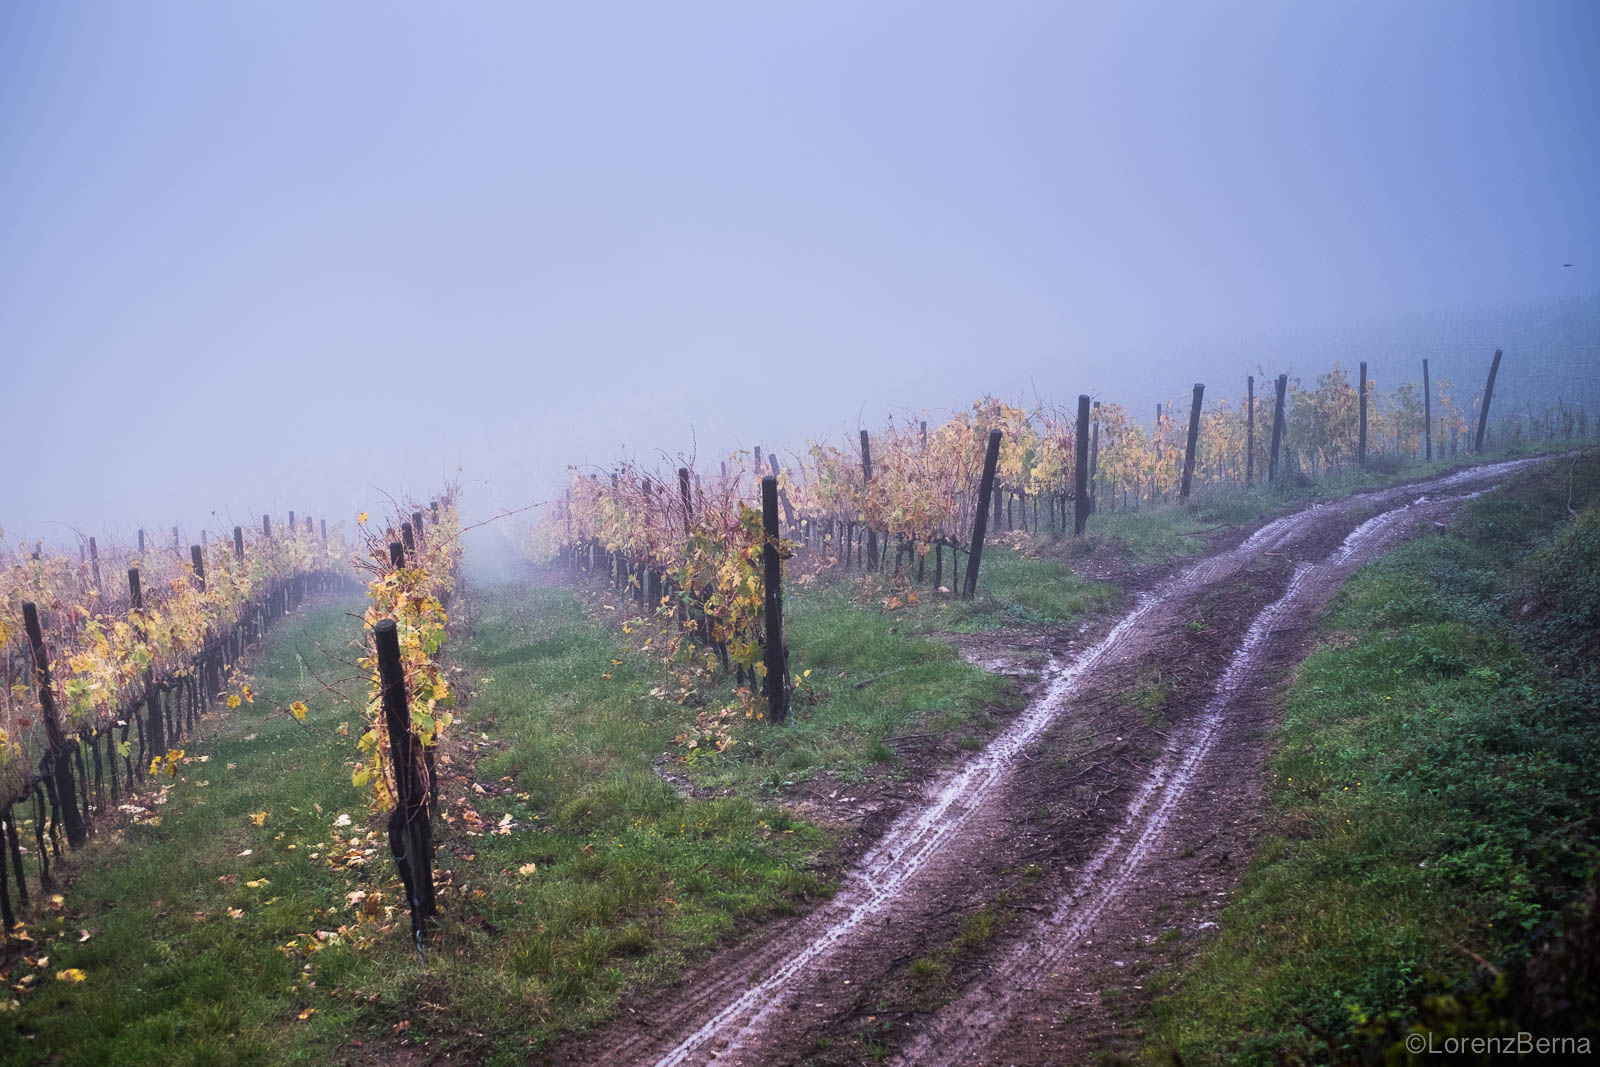 Wines field in the mist of autumn in Chianti, Italy